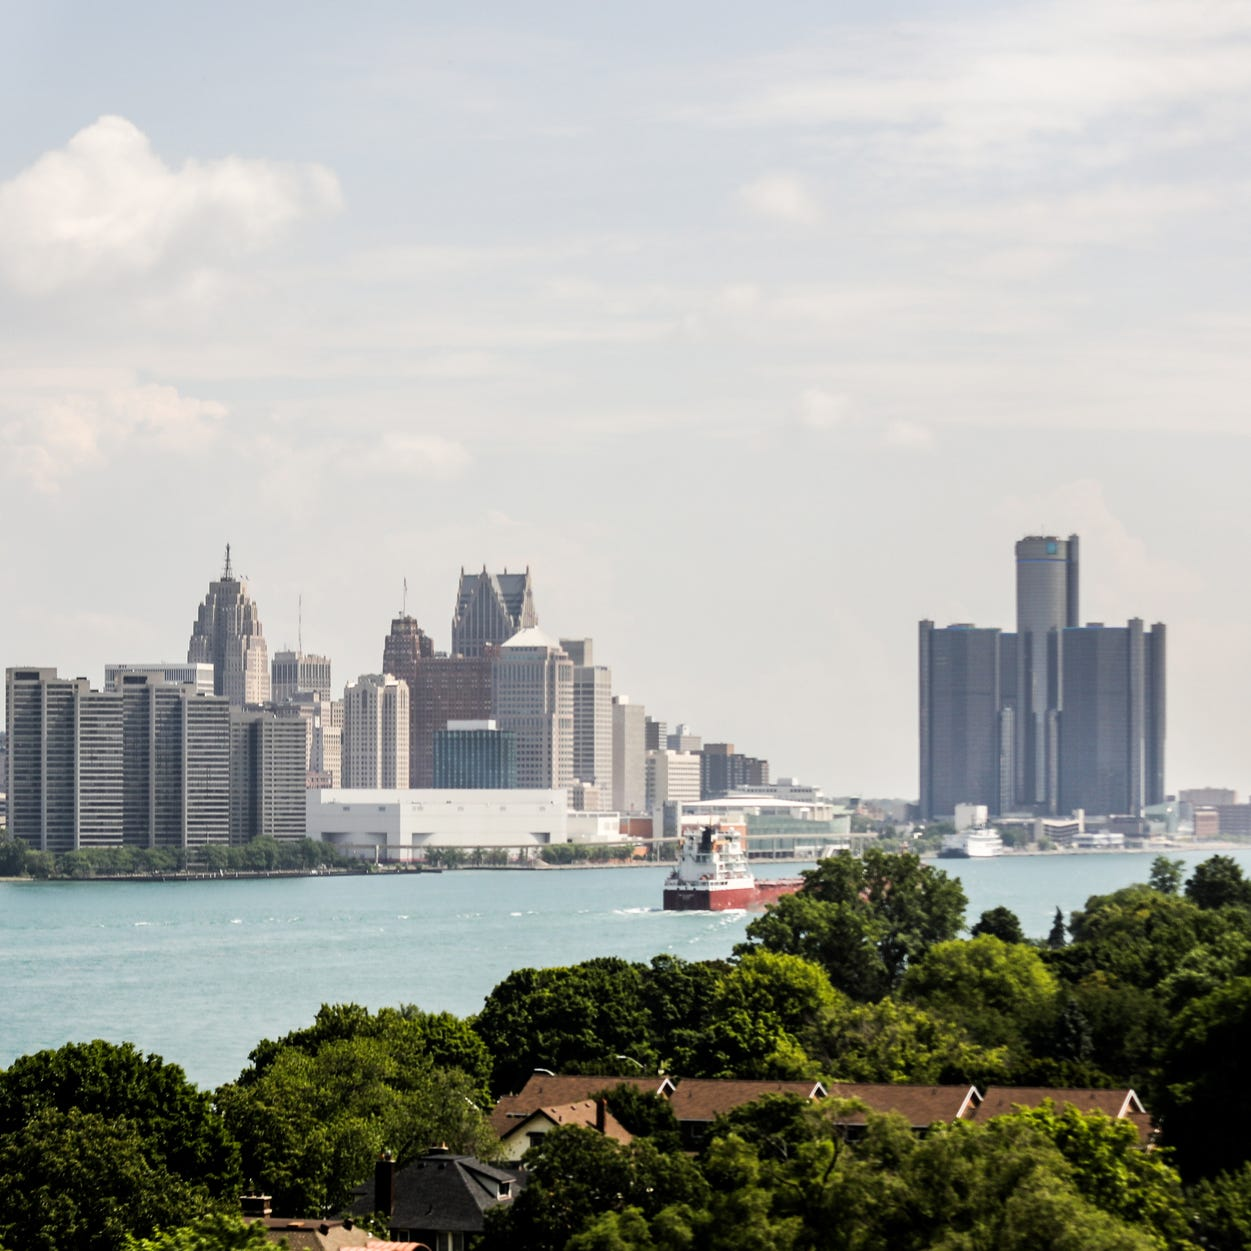 17 facts you might not know about Detroit